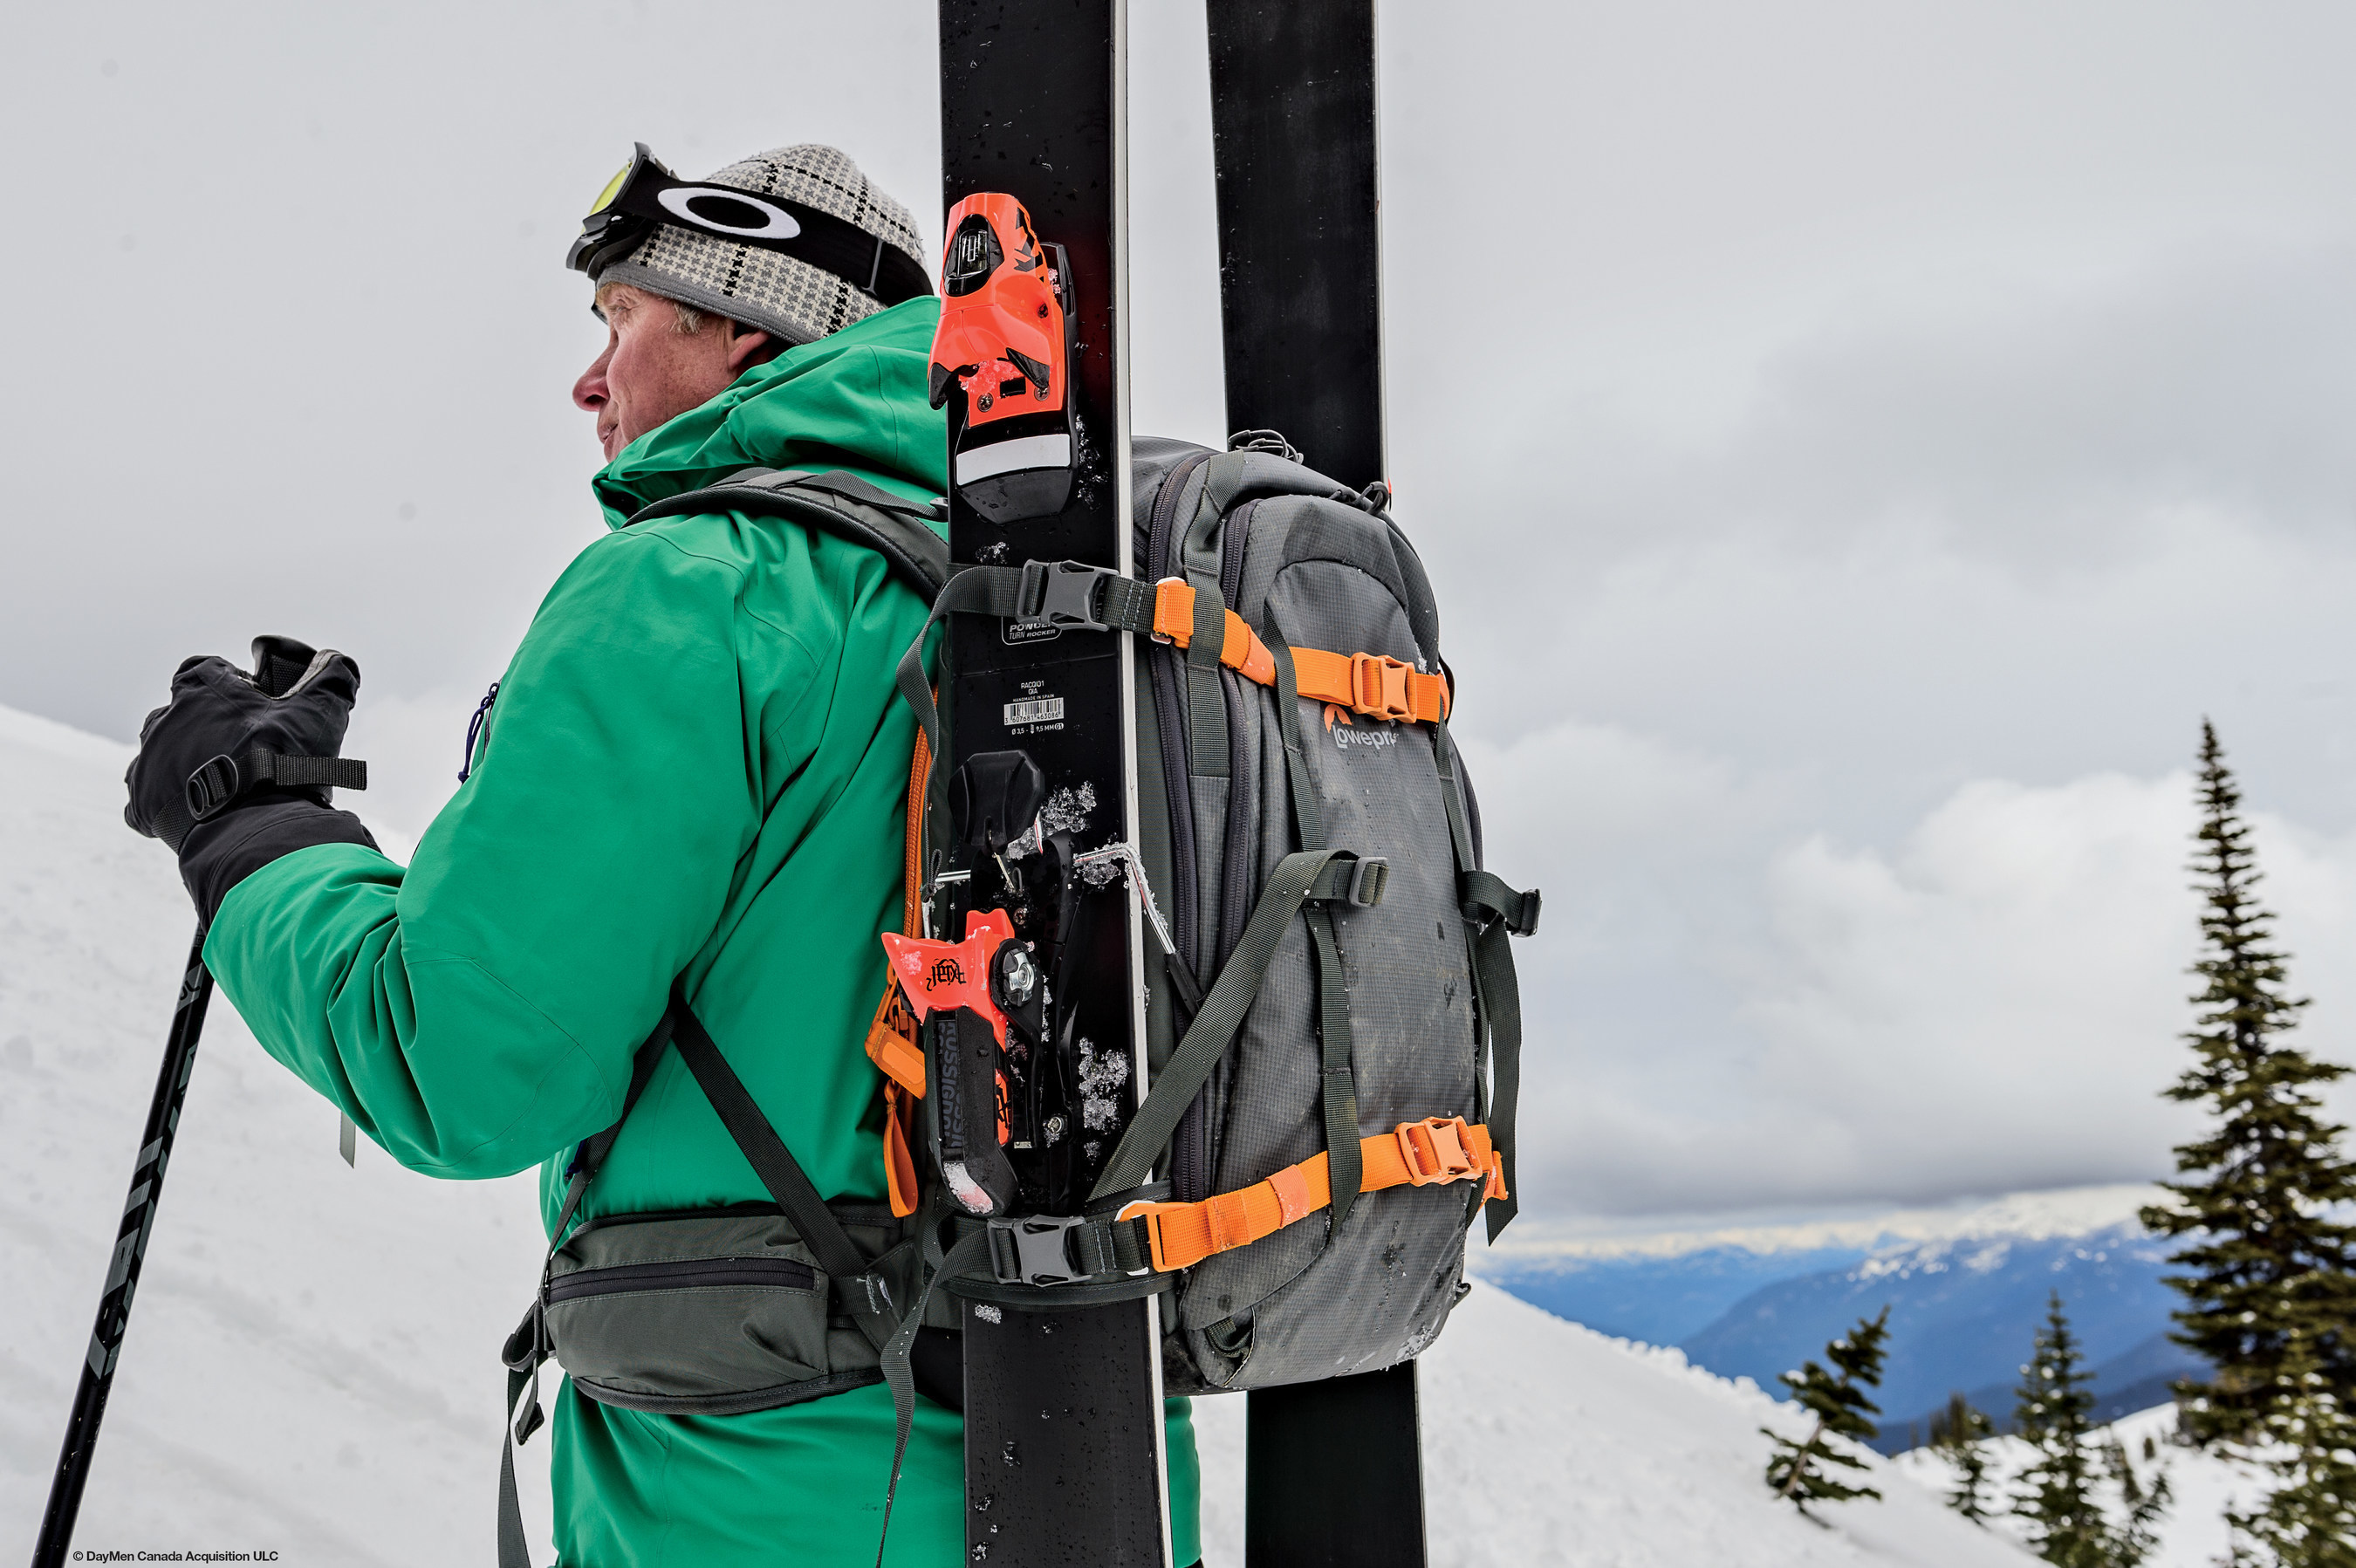 Lowepro Delivers All-Season Versatility, Protection and Performance with New Photo Backpacks Built for Outdoor Adventurers